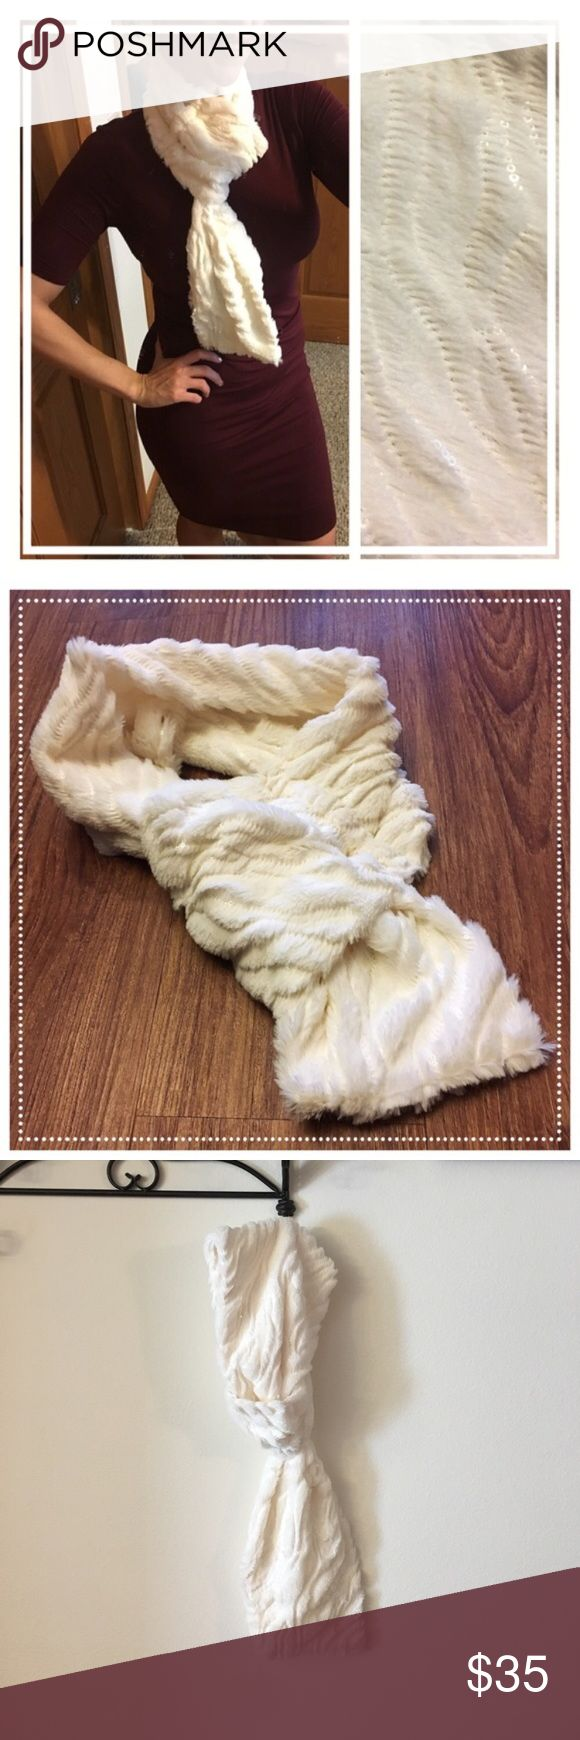 💥Luxurious/unique soft cream scarf subtle sequins 📦Same day shipping (as long as P.O. is open for business). ❤ Measurements are approximate. Descriptions are accurate to the best of my knowledge.  This luxurious cream-colored scarf will add sophistication & warmth to any outfit. The unique design is both easy to wear as well as chic in style. One end has a loop that the opposite ends slides through for effortless class. Fabric content: 100% soft brushed polyester and subtle sequins. Total…